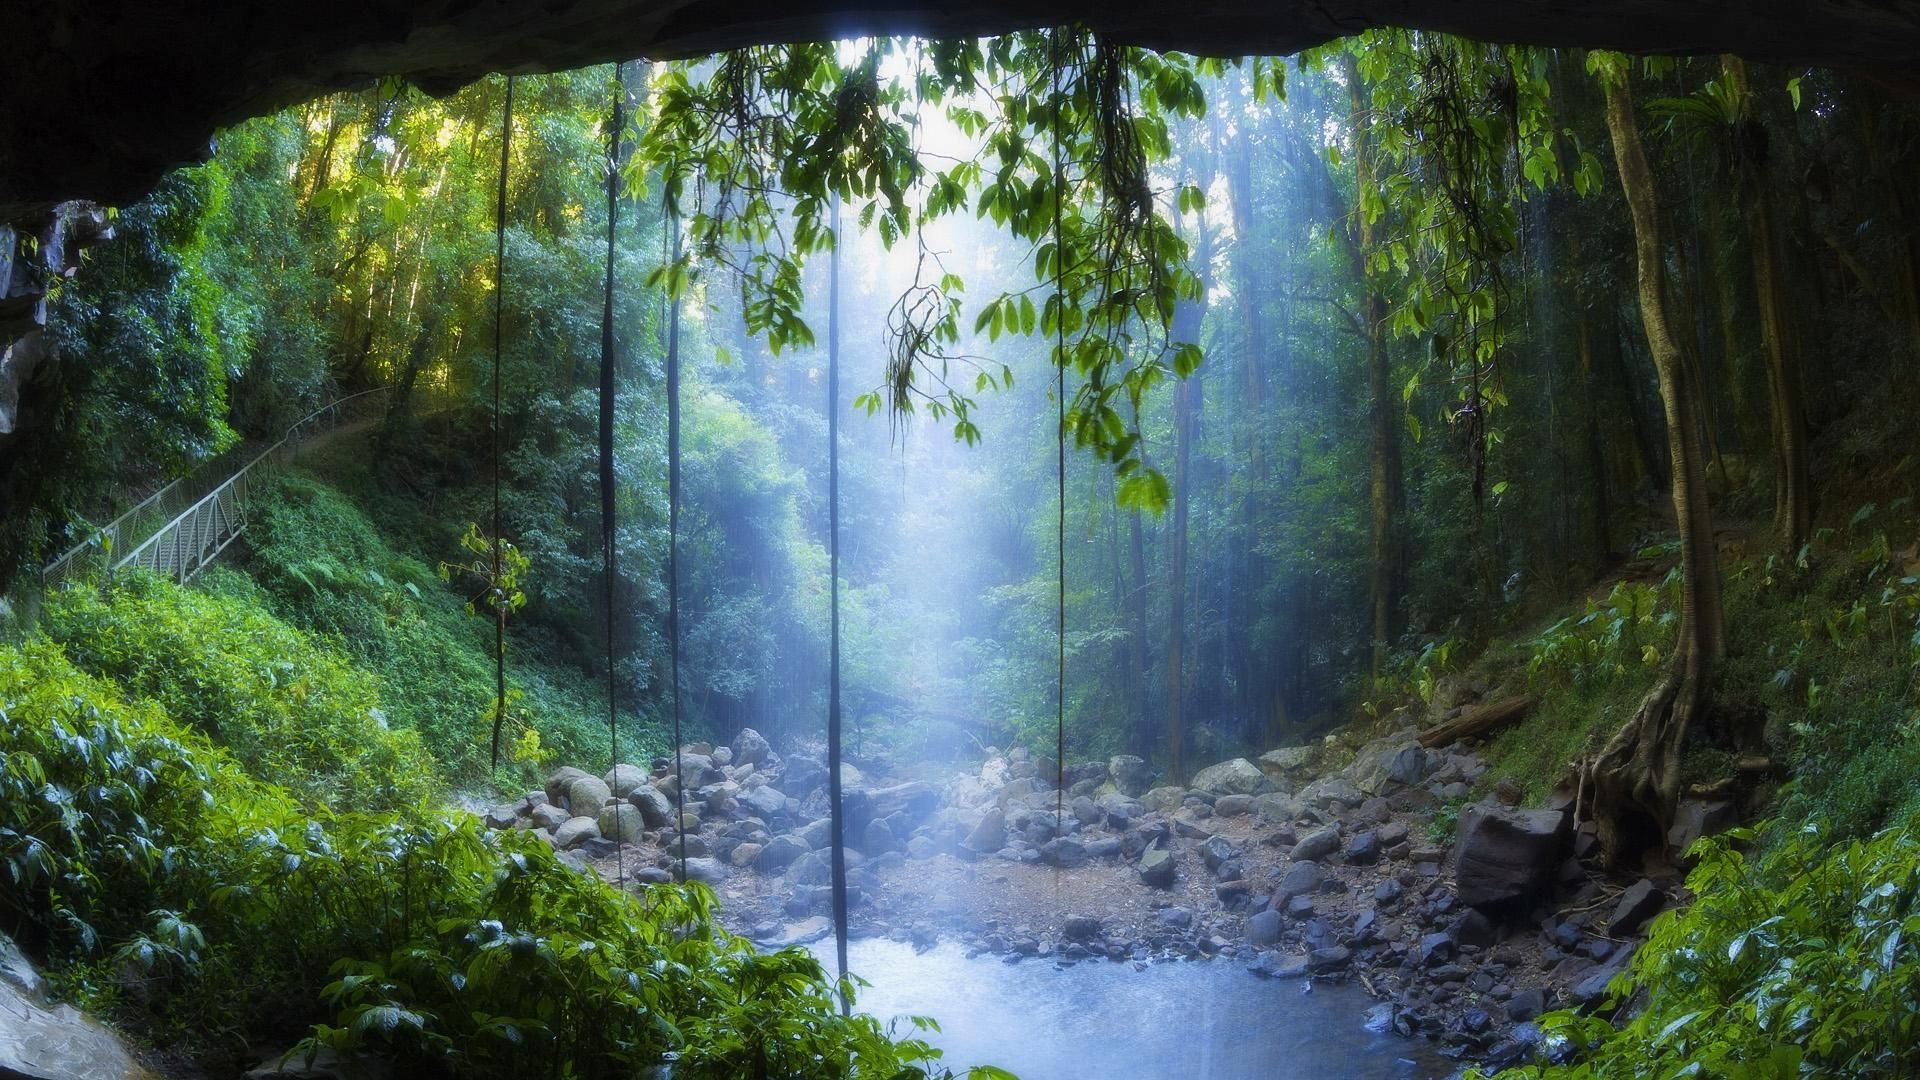 Rain Forest Wallpapers National Parks Scenery New South Wales